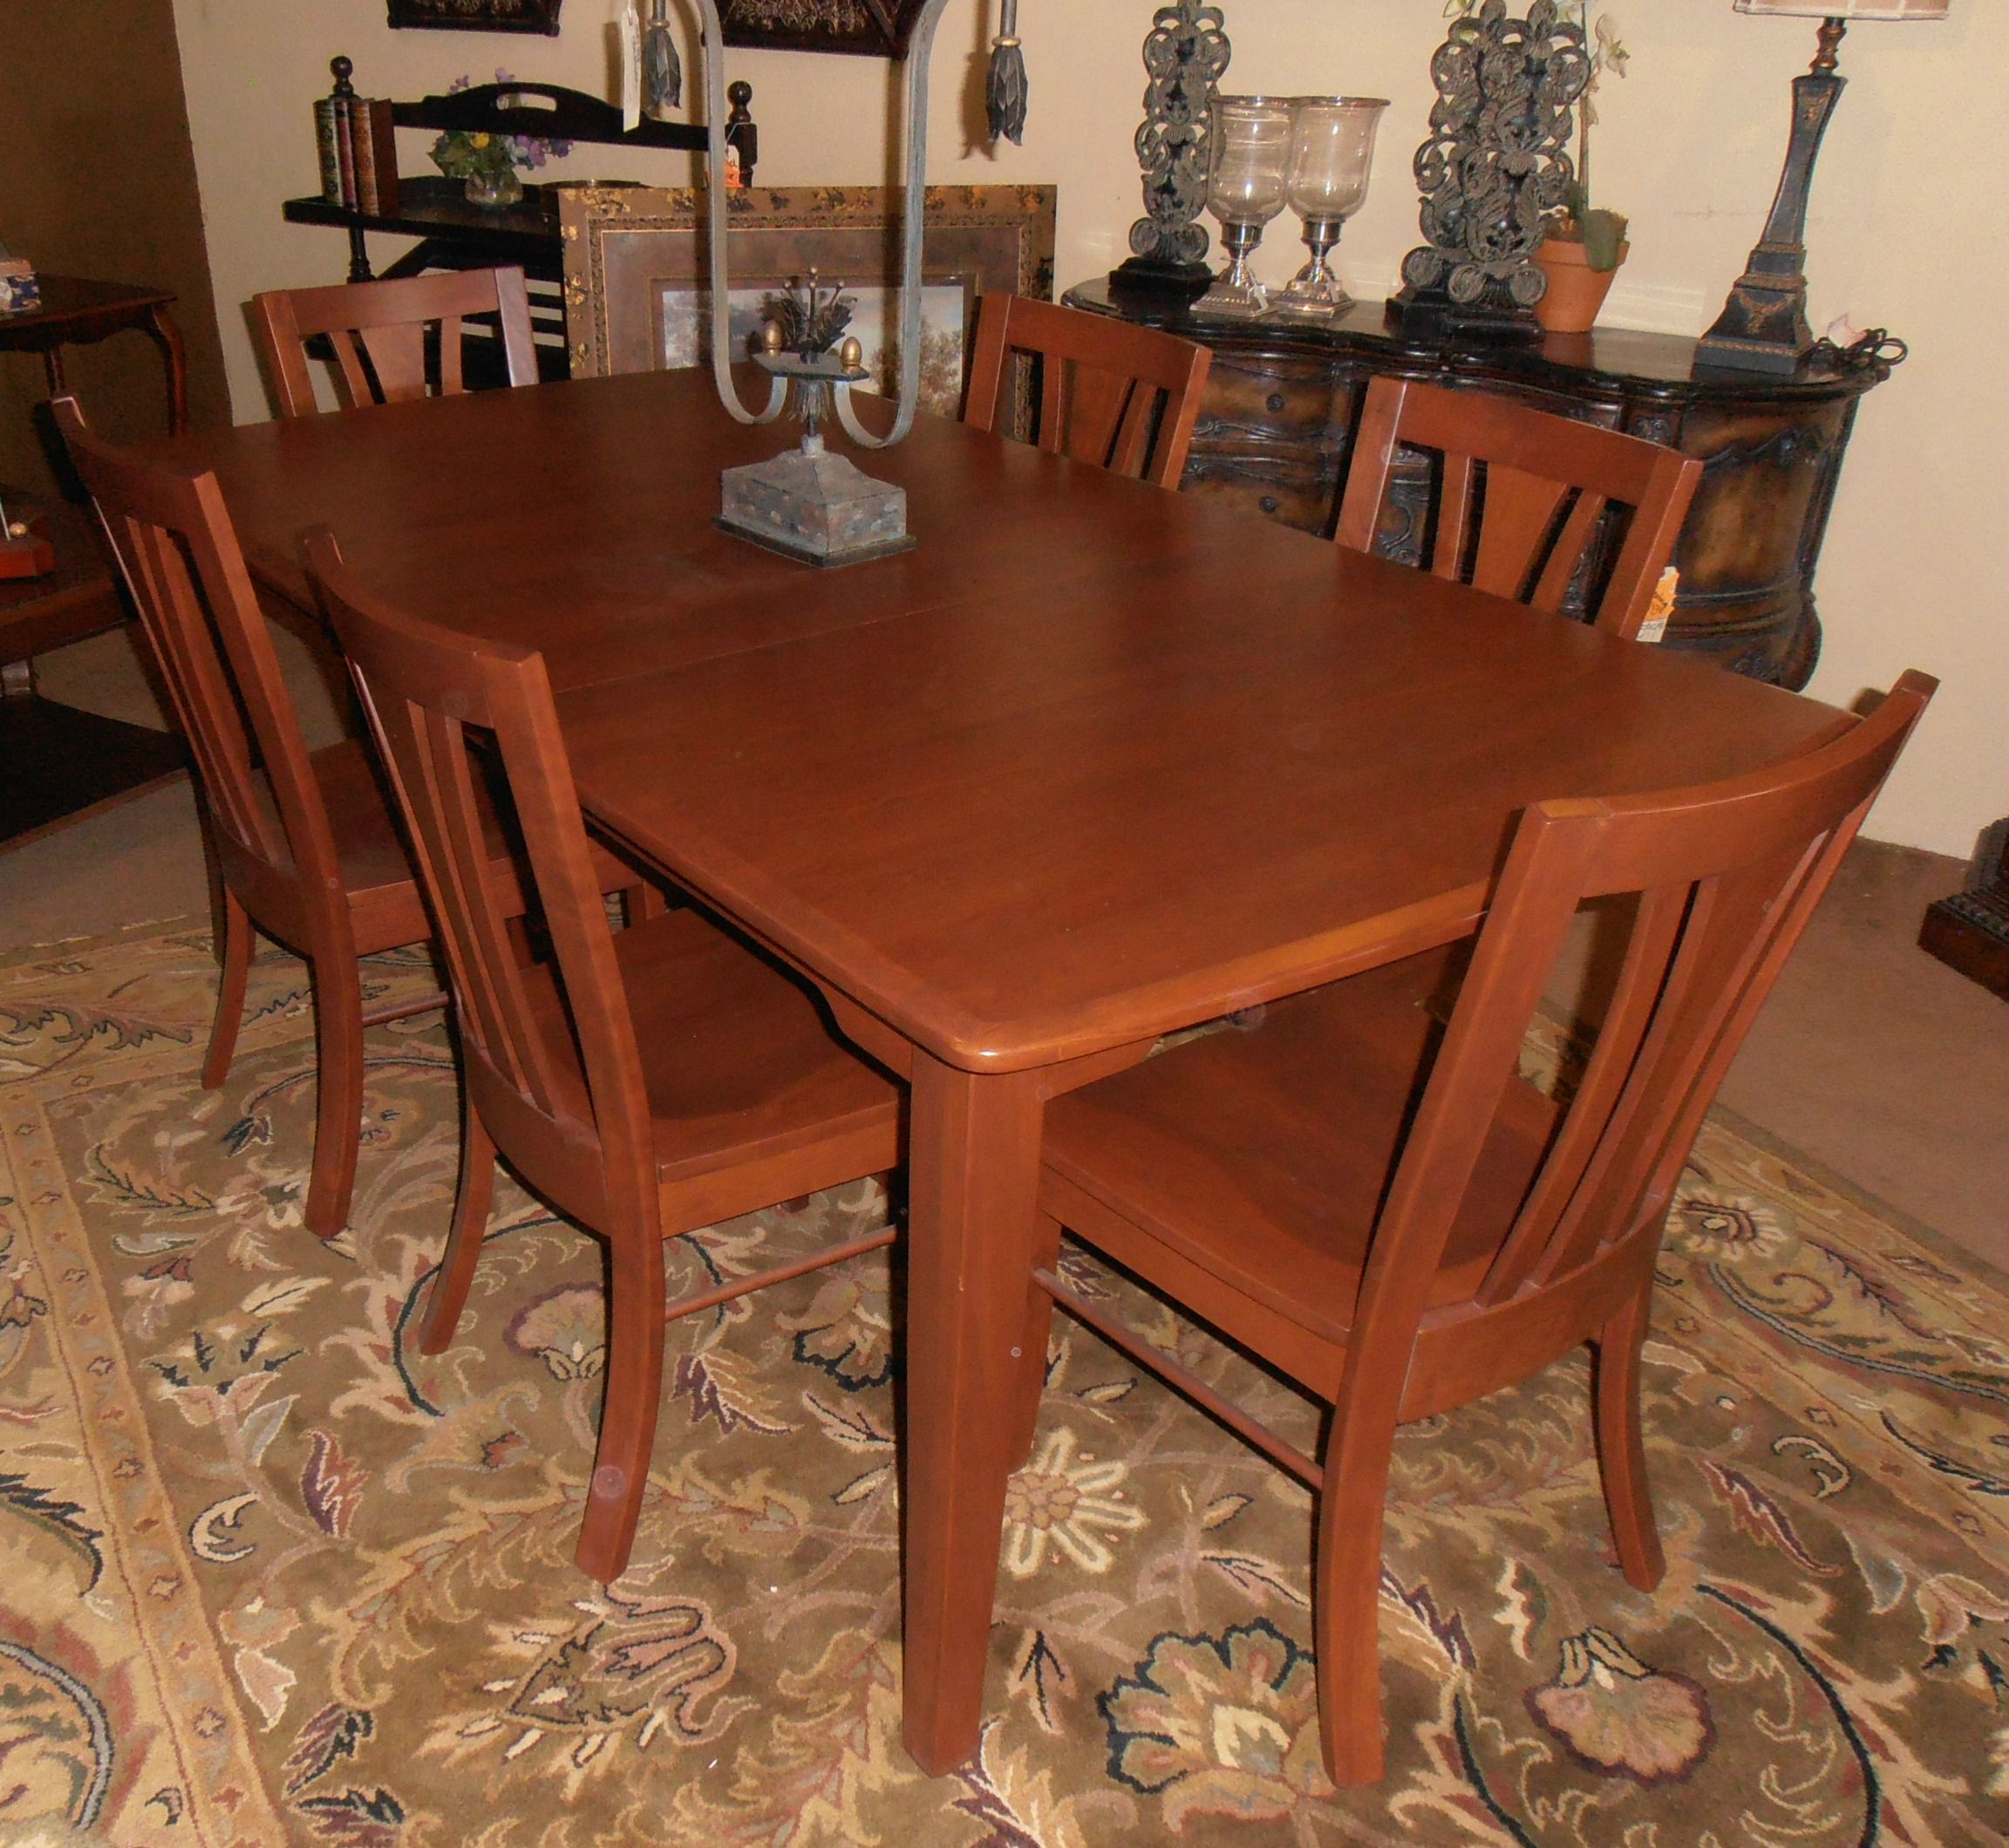 Amish Solid Cherry 42 X 60 2 18 Leaf Shaker Table And 6 Chairs Kitchen Remodel Dining Dining Table